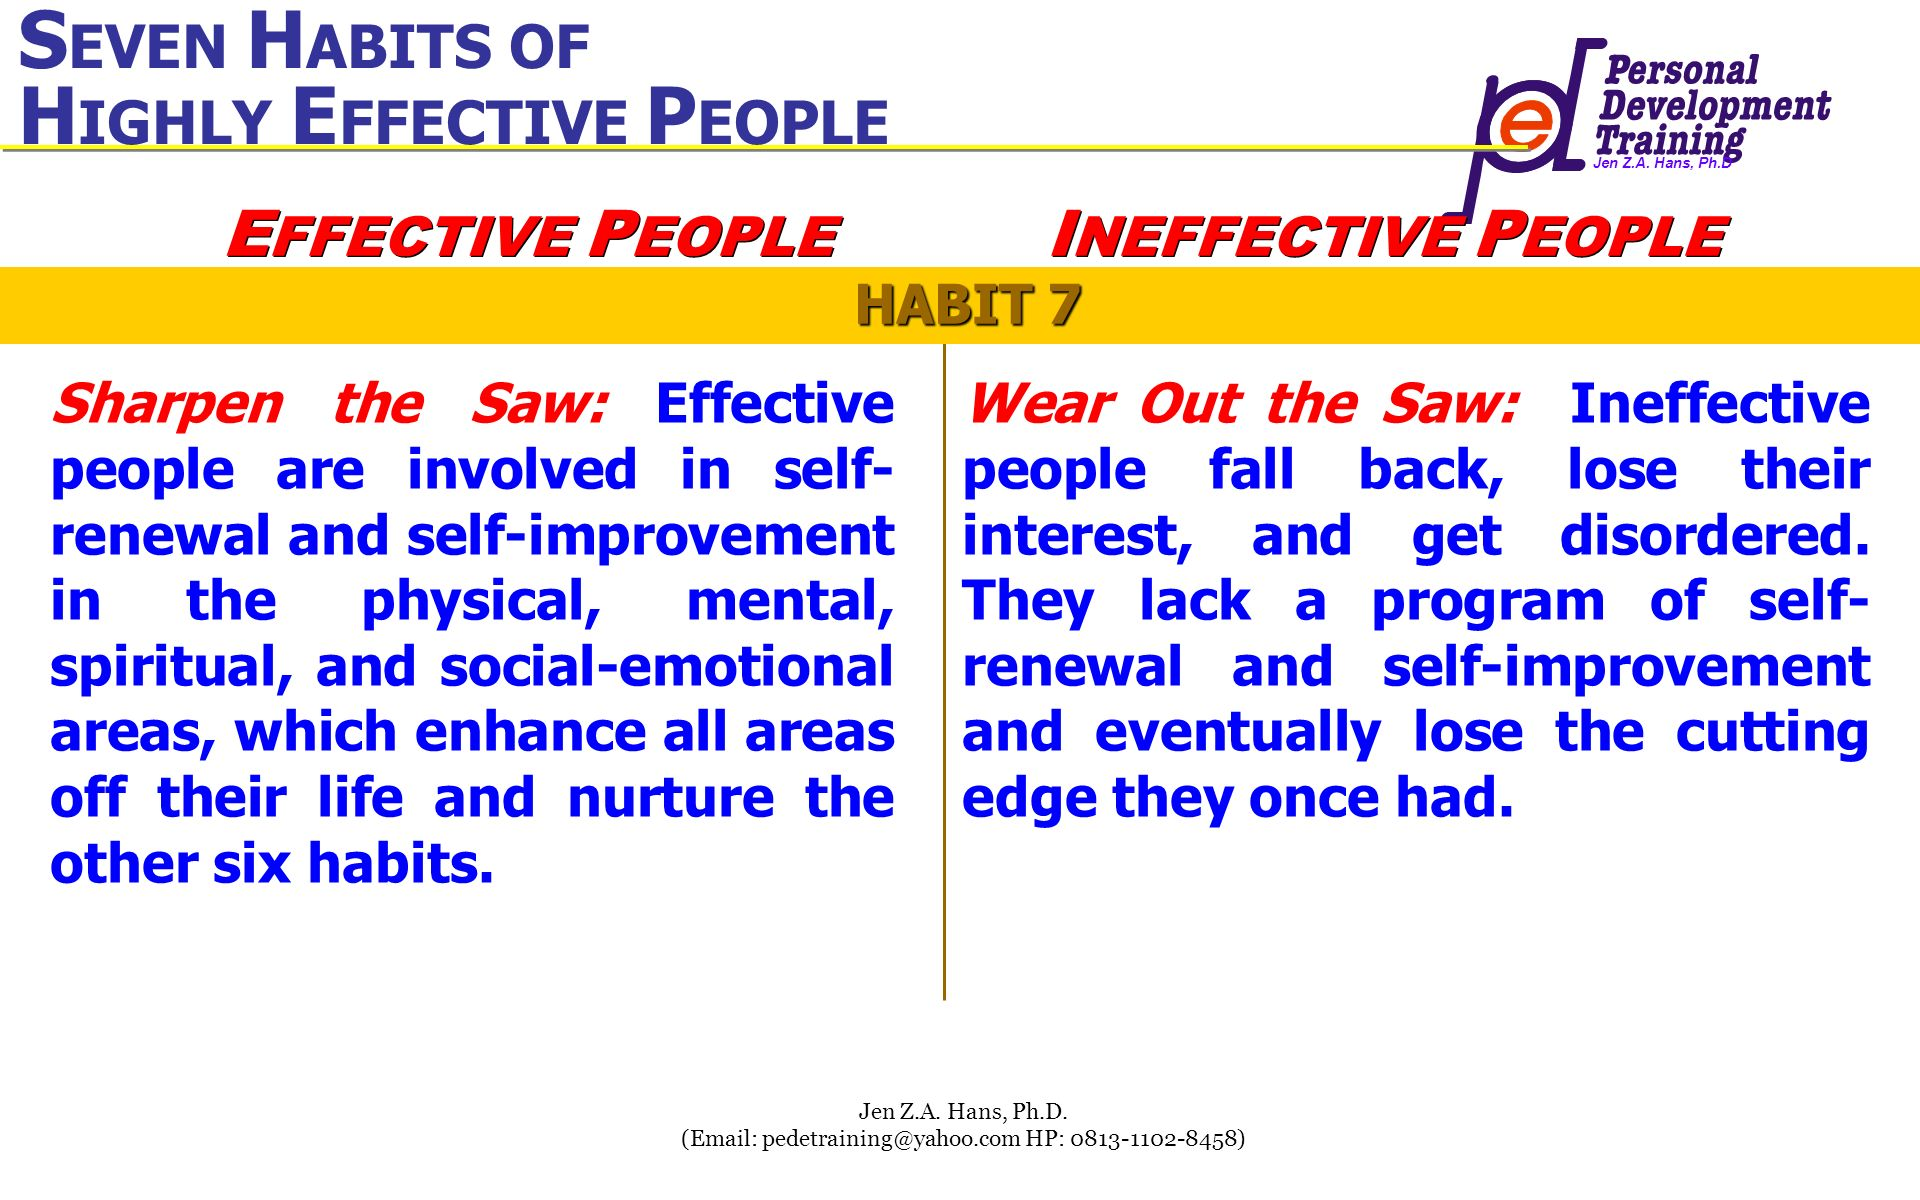 Jen Z.A. Hans, Ph.D Jen Z.A. Hans, Ph.D. (Email: pedetraining@yahoo.com HP: 0813-1102-8458) Sharpen the Saw: Effective people are involved in self- re